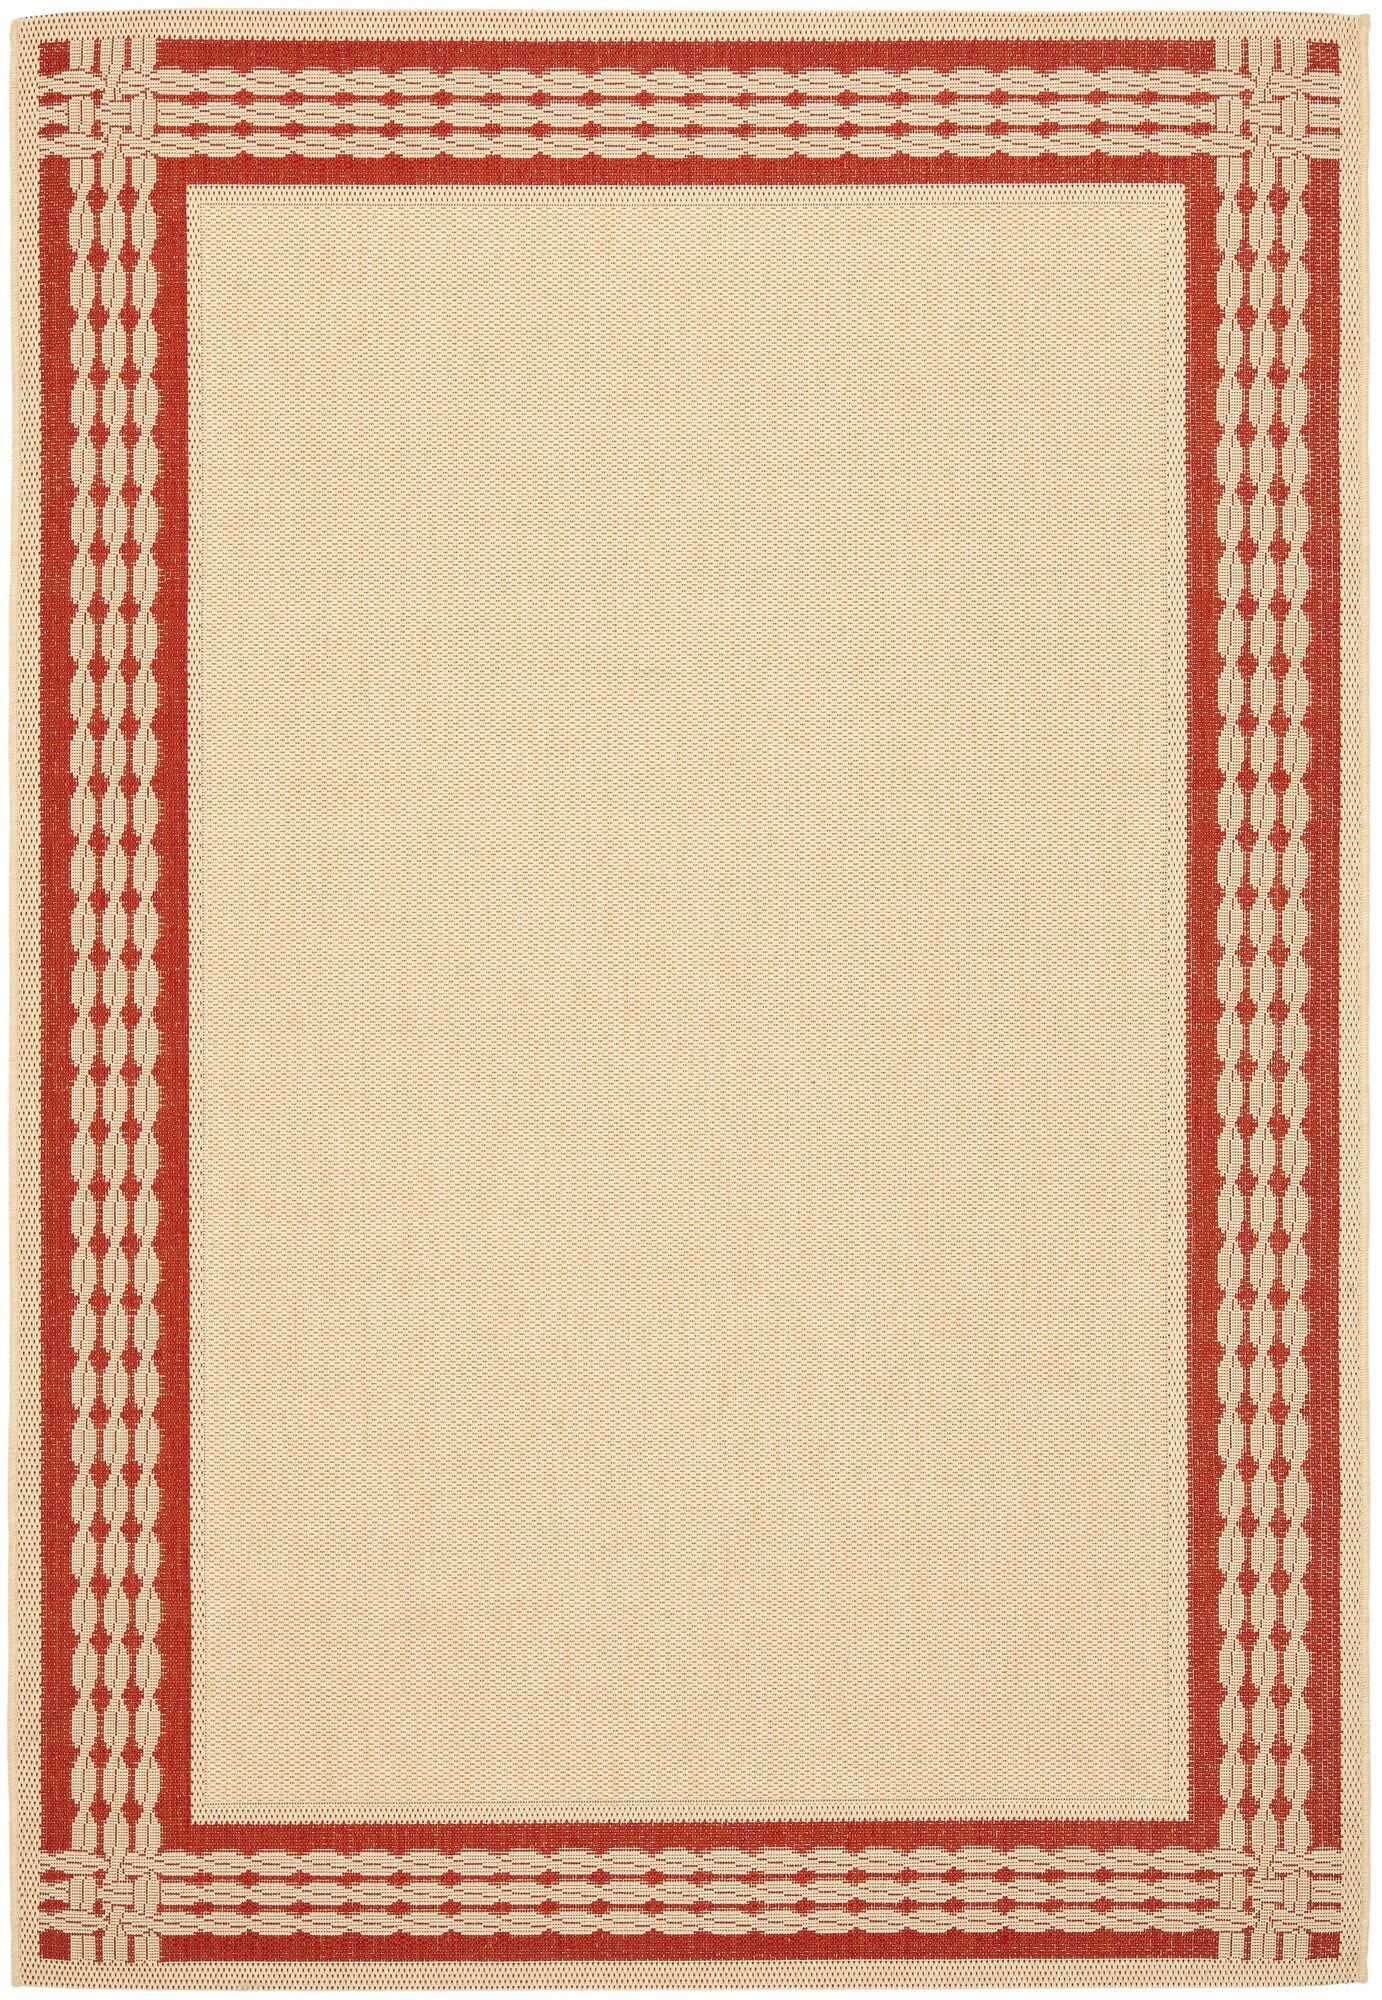 Lakeside Ribbon Natural/Red Area Rug Rug Size: Rectangle 4' x 5'7